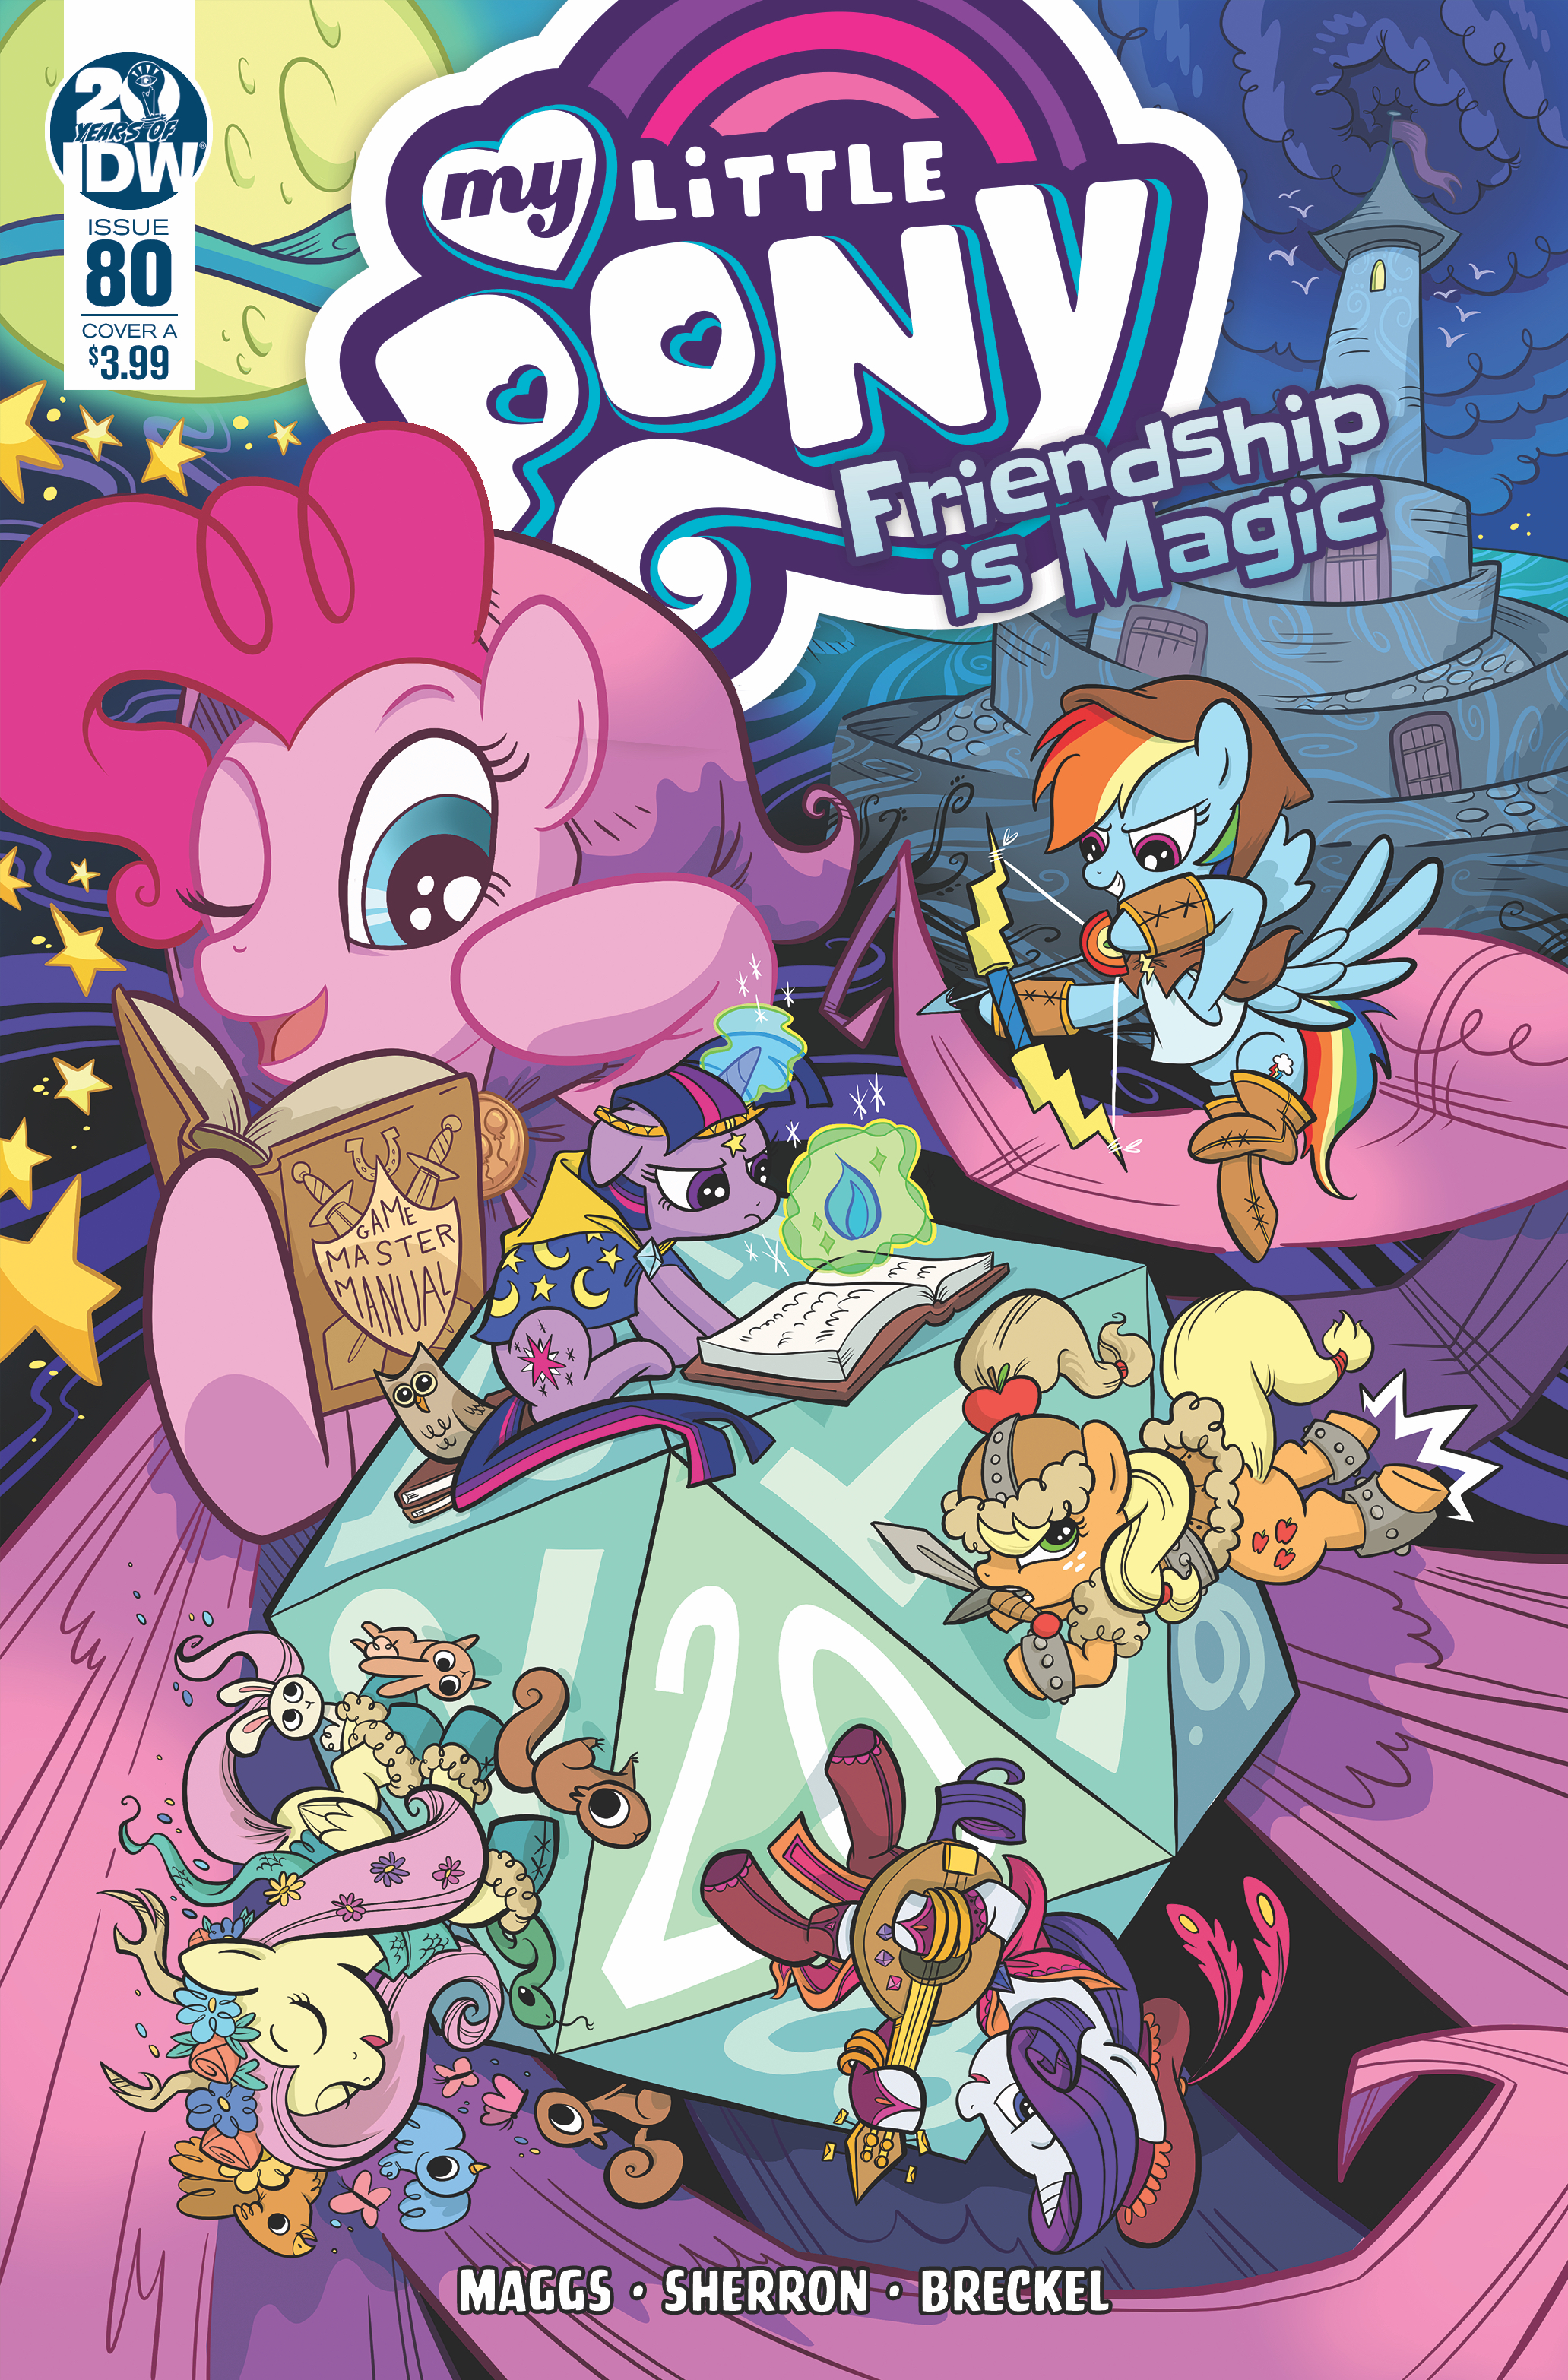 Friendship is Magic Issue 80